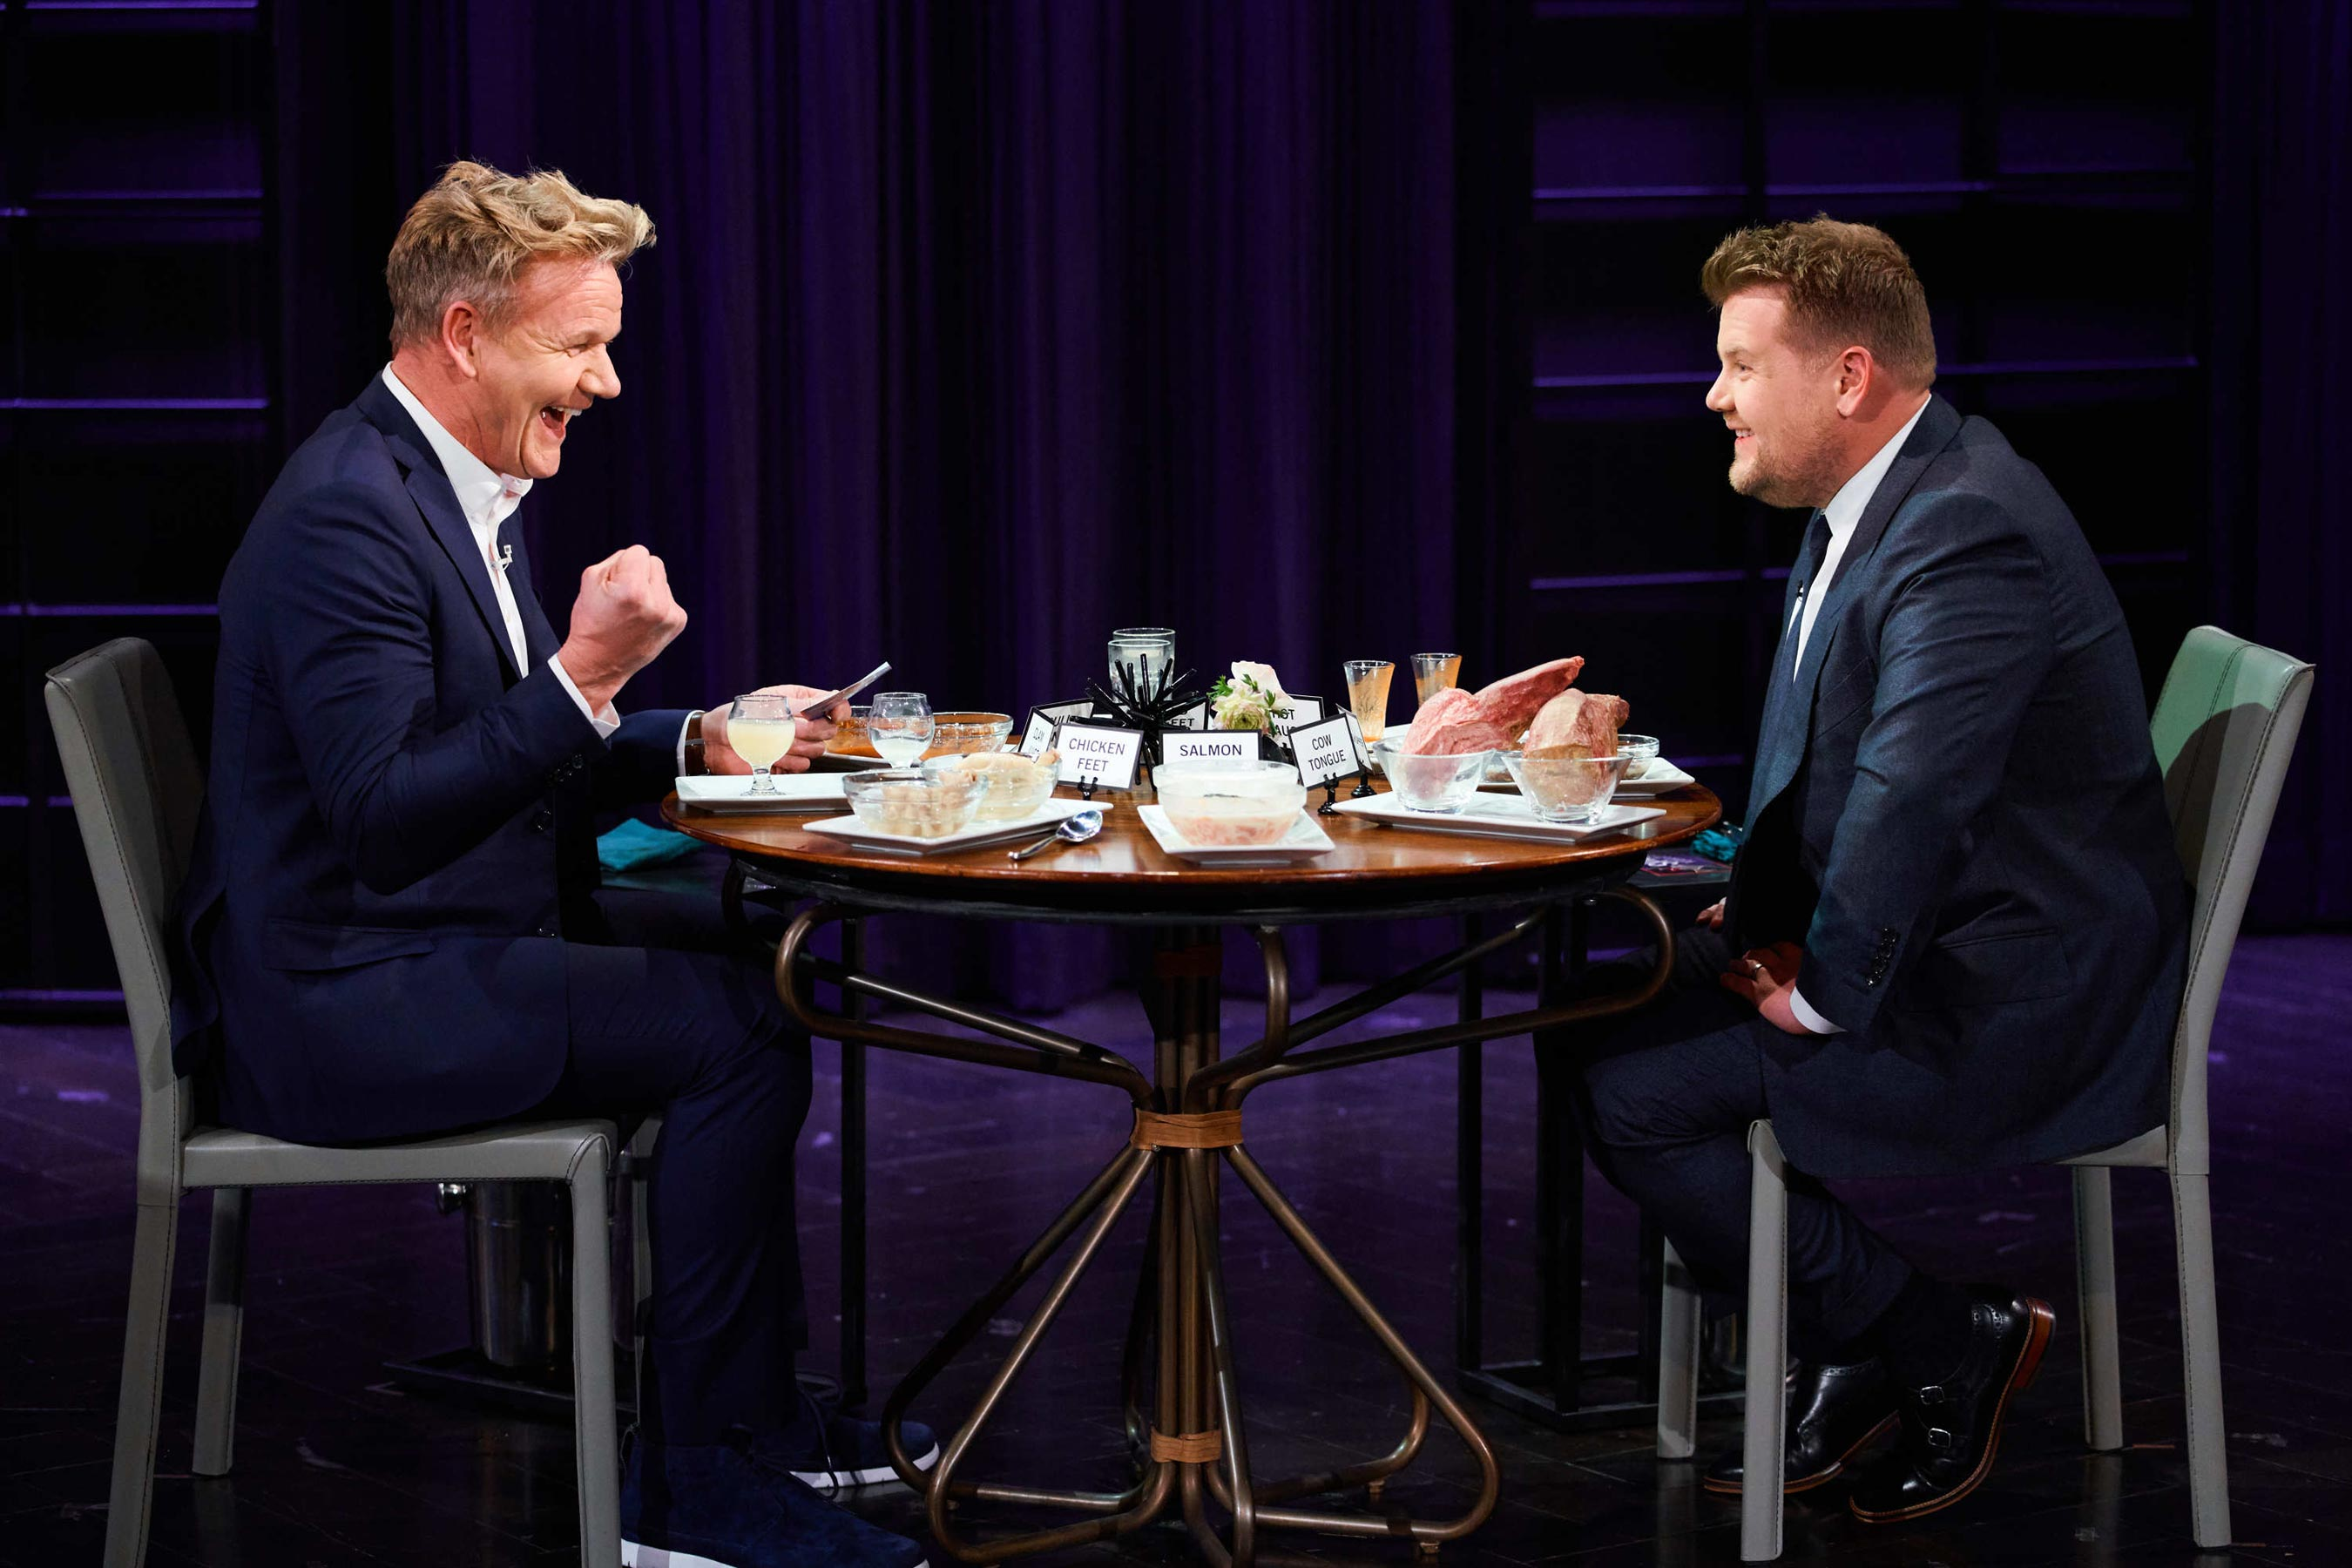 Gordon Ramsay eats gross things with James Corden on Late Late Show